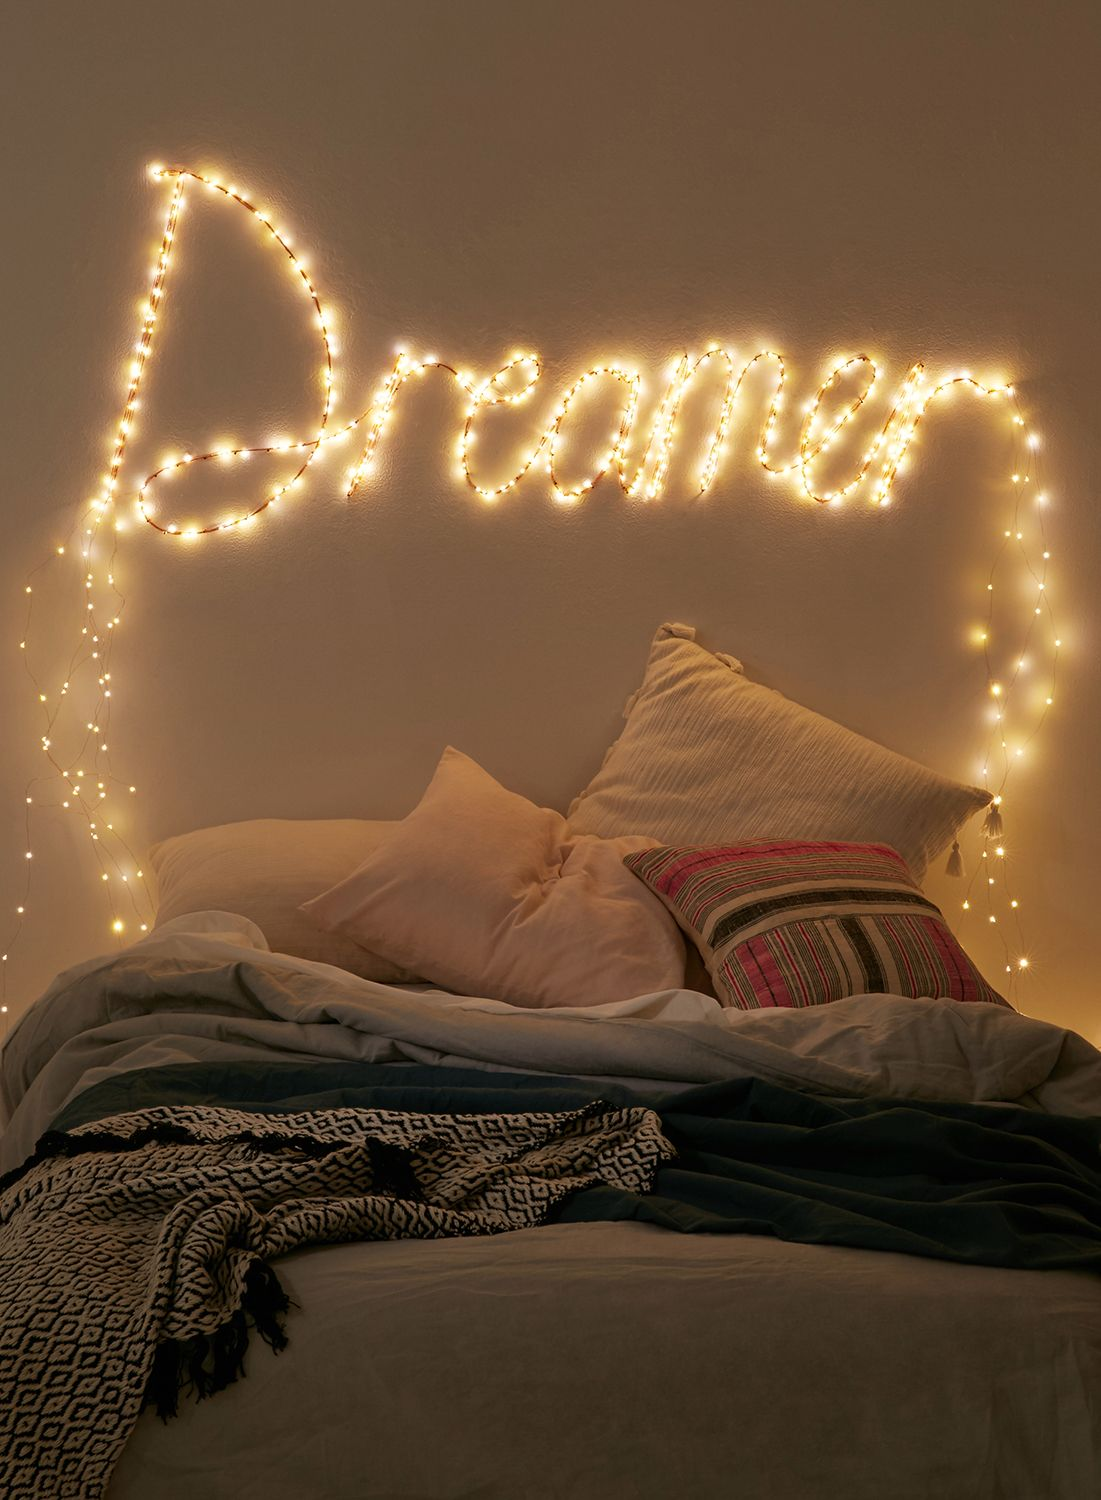 Bedroom ceiling string lights - Extra Long Firefly String Lights